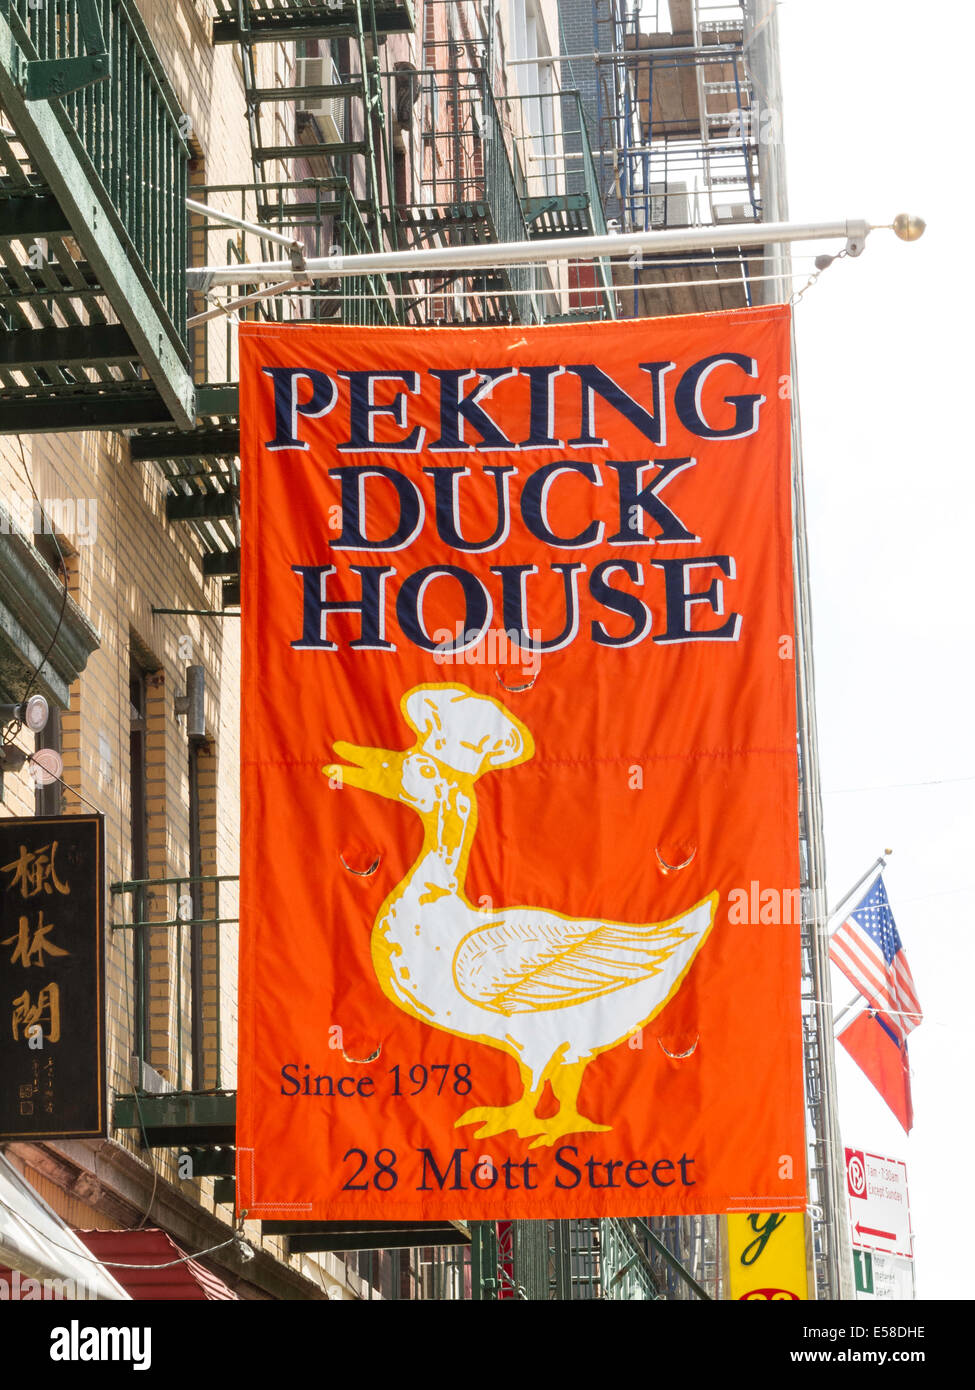 Peking Duck House Restaurant Banner, Chinatown, NYC